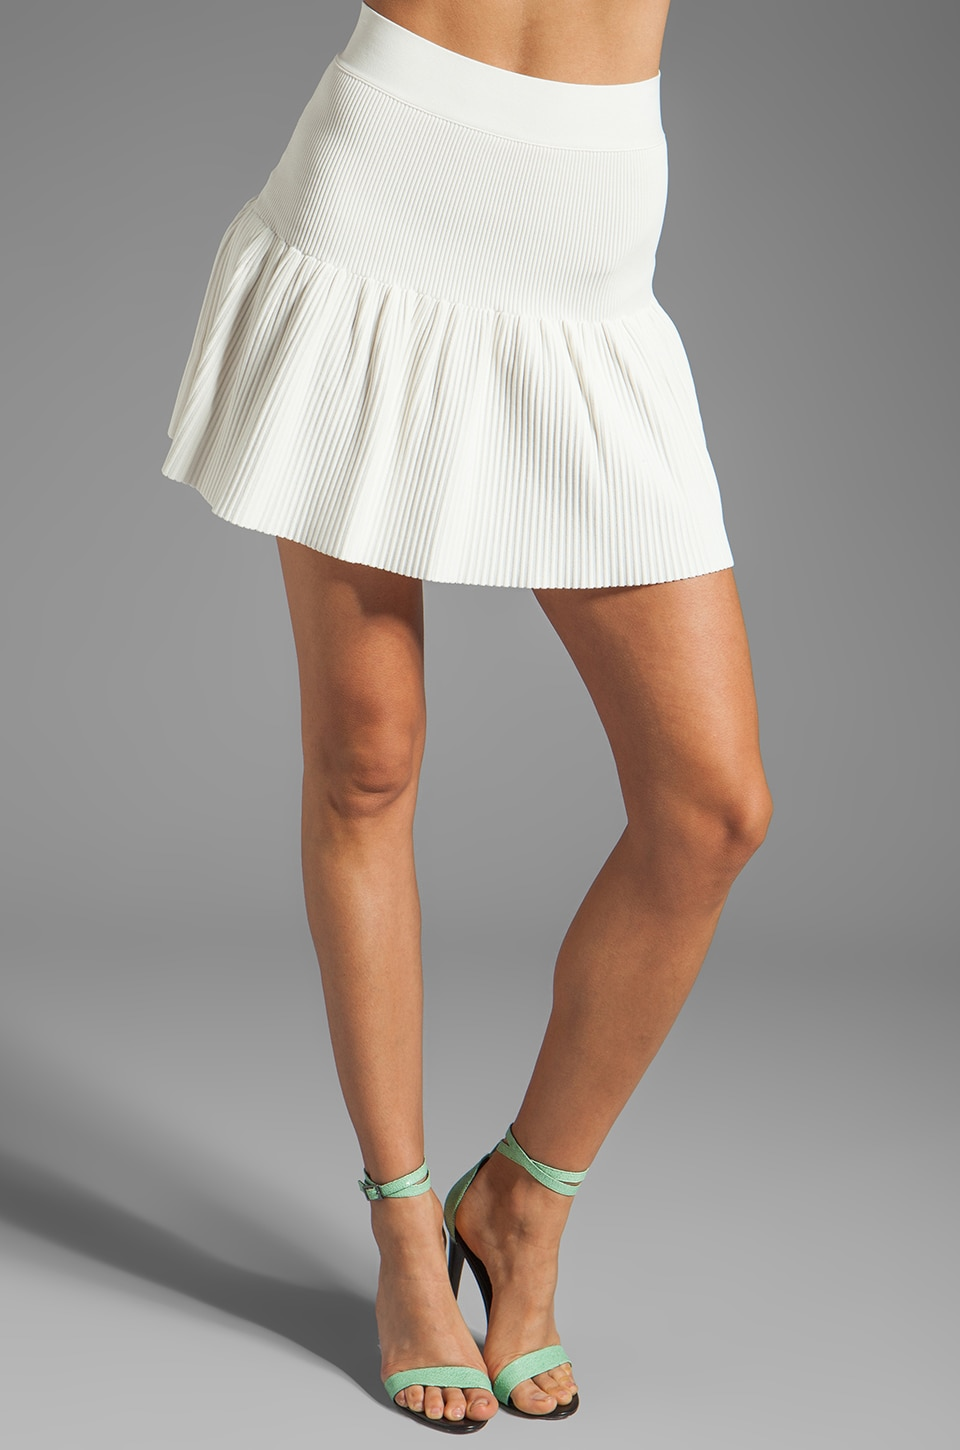 BCBGMAXAZRIA Skirt in Gardenia